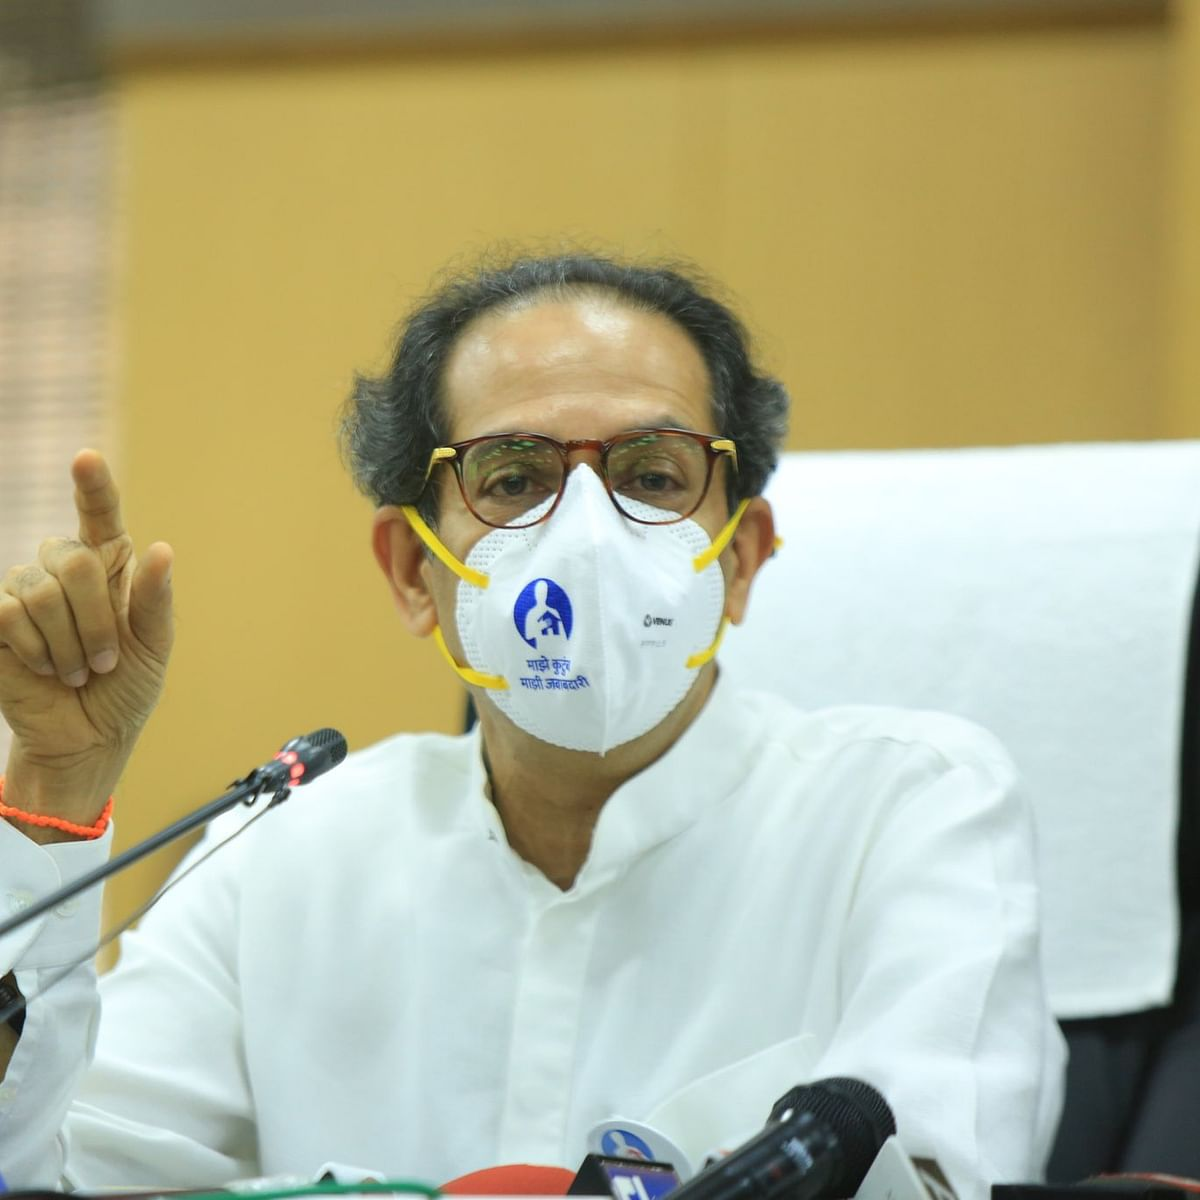 Maharashtra: Lockdown seems to be only option to break the virus chain, says Uddhav Thackeray